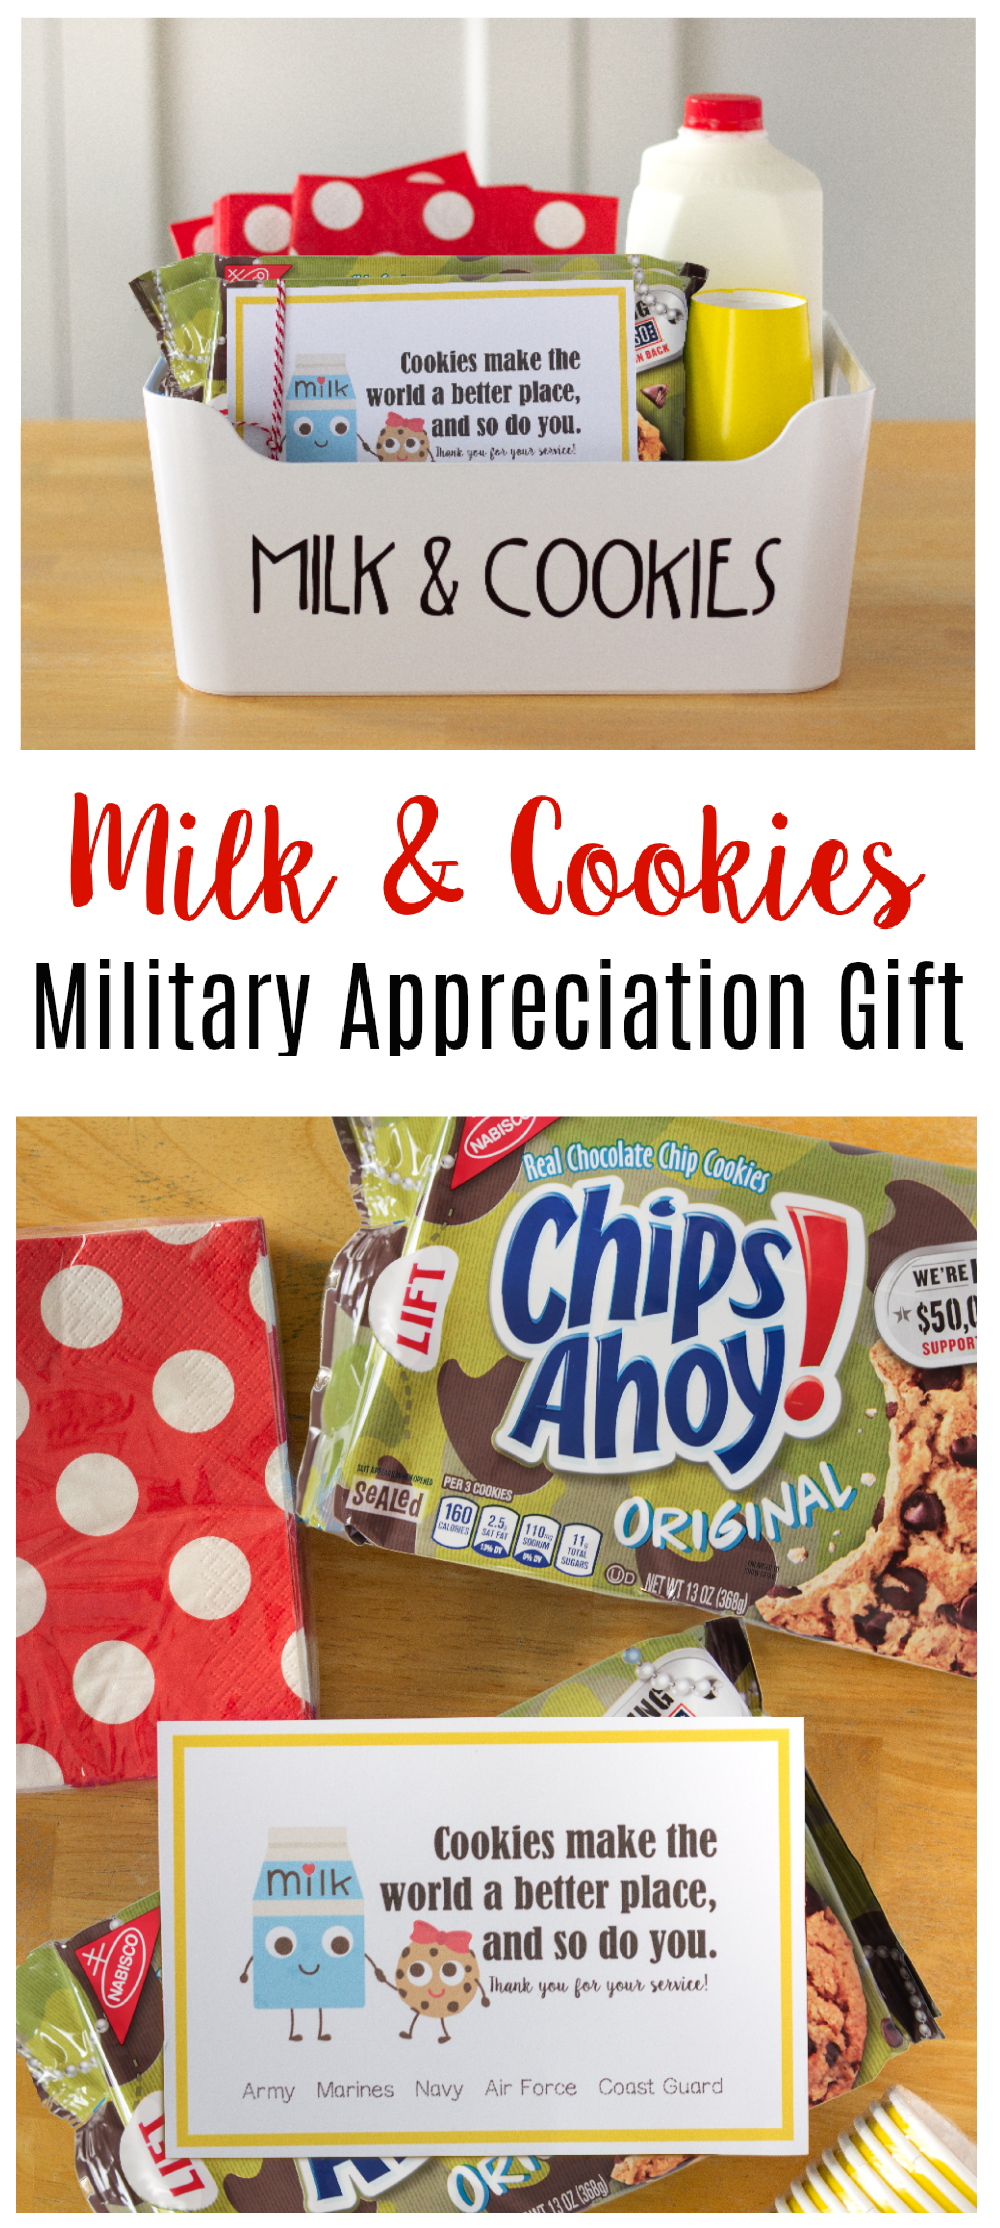 milk and cookies military appreciation gift